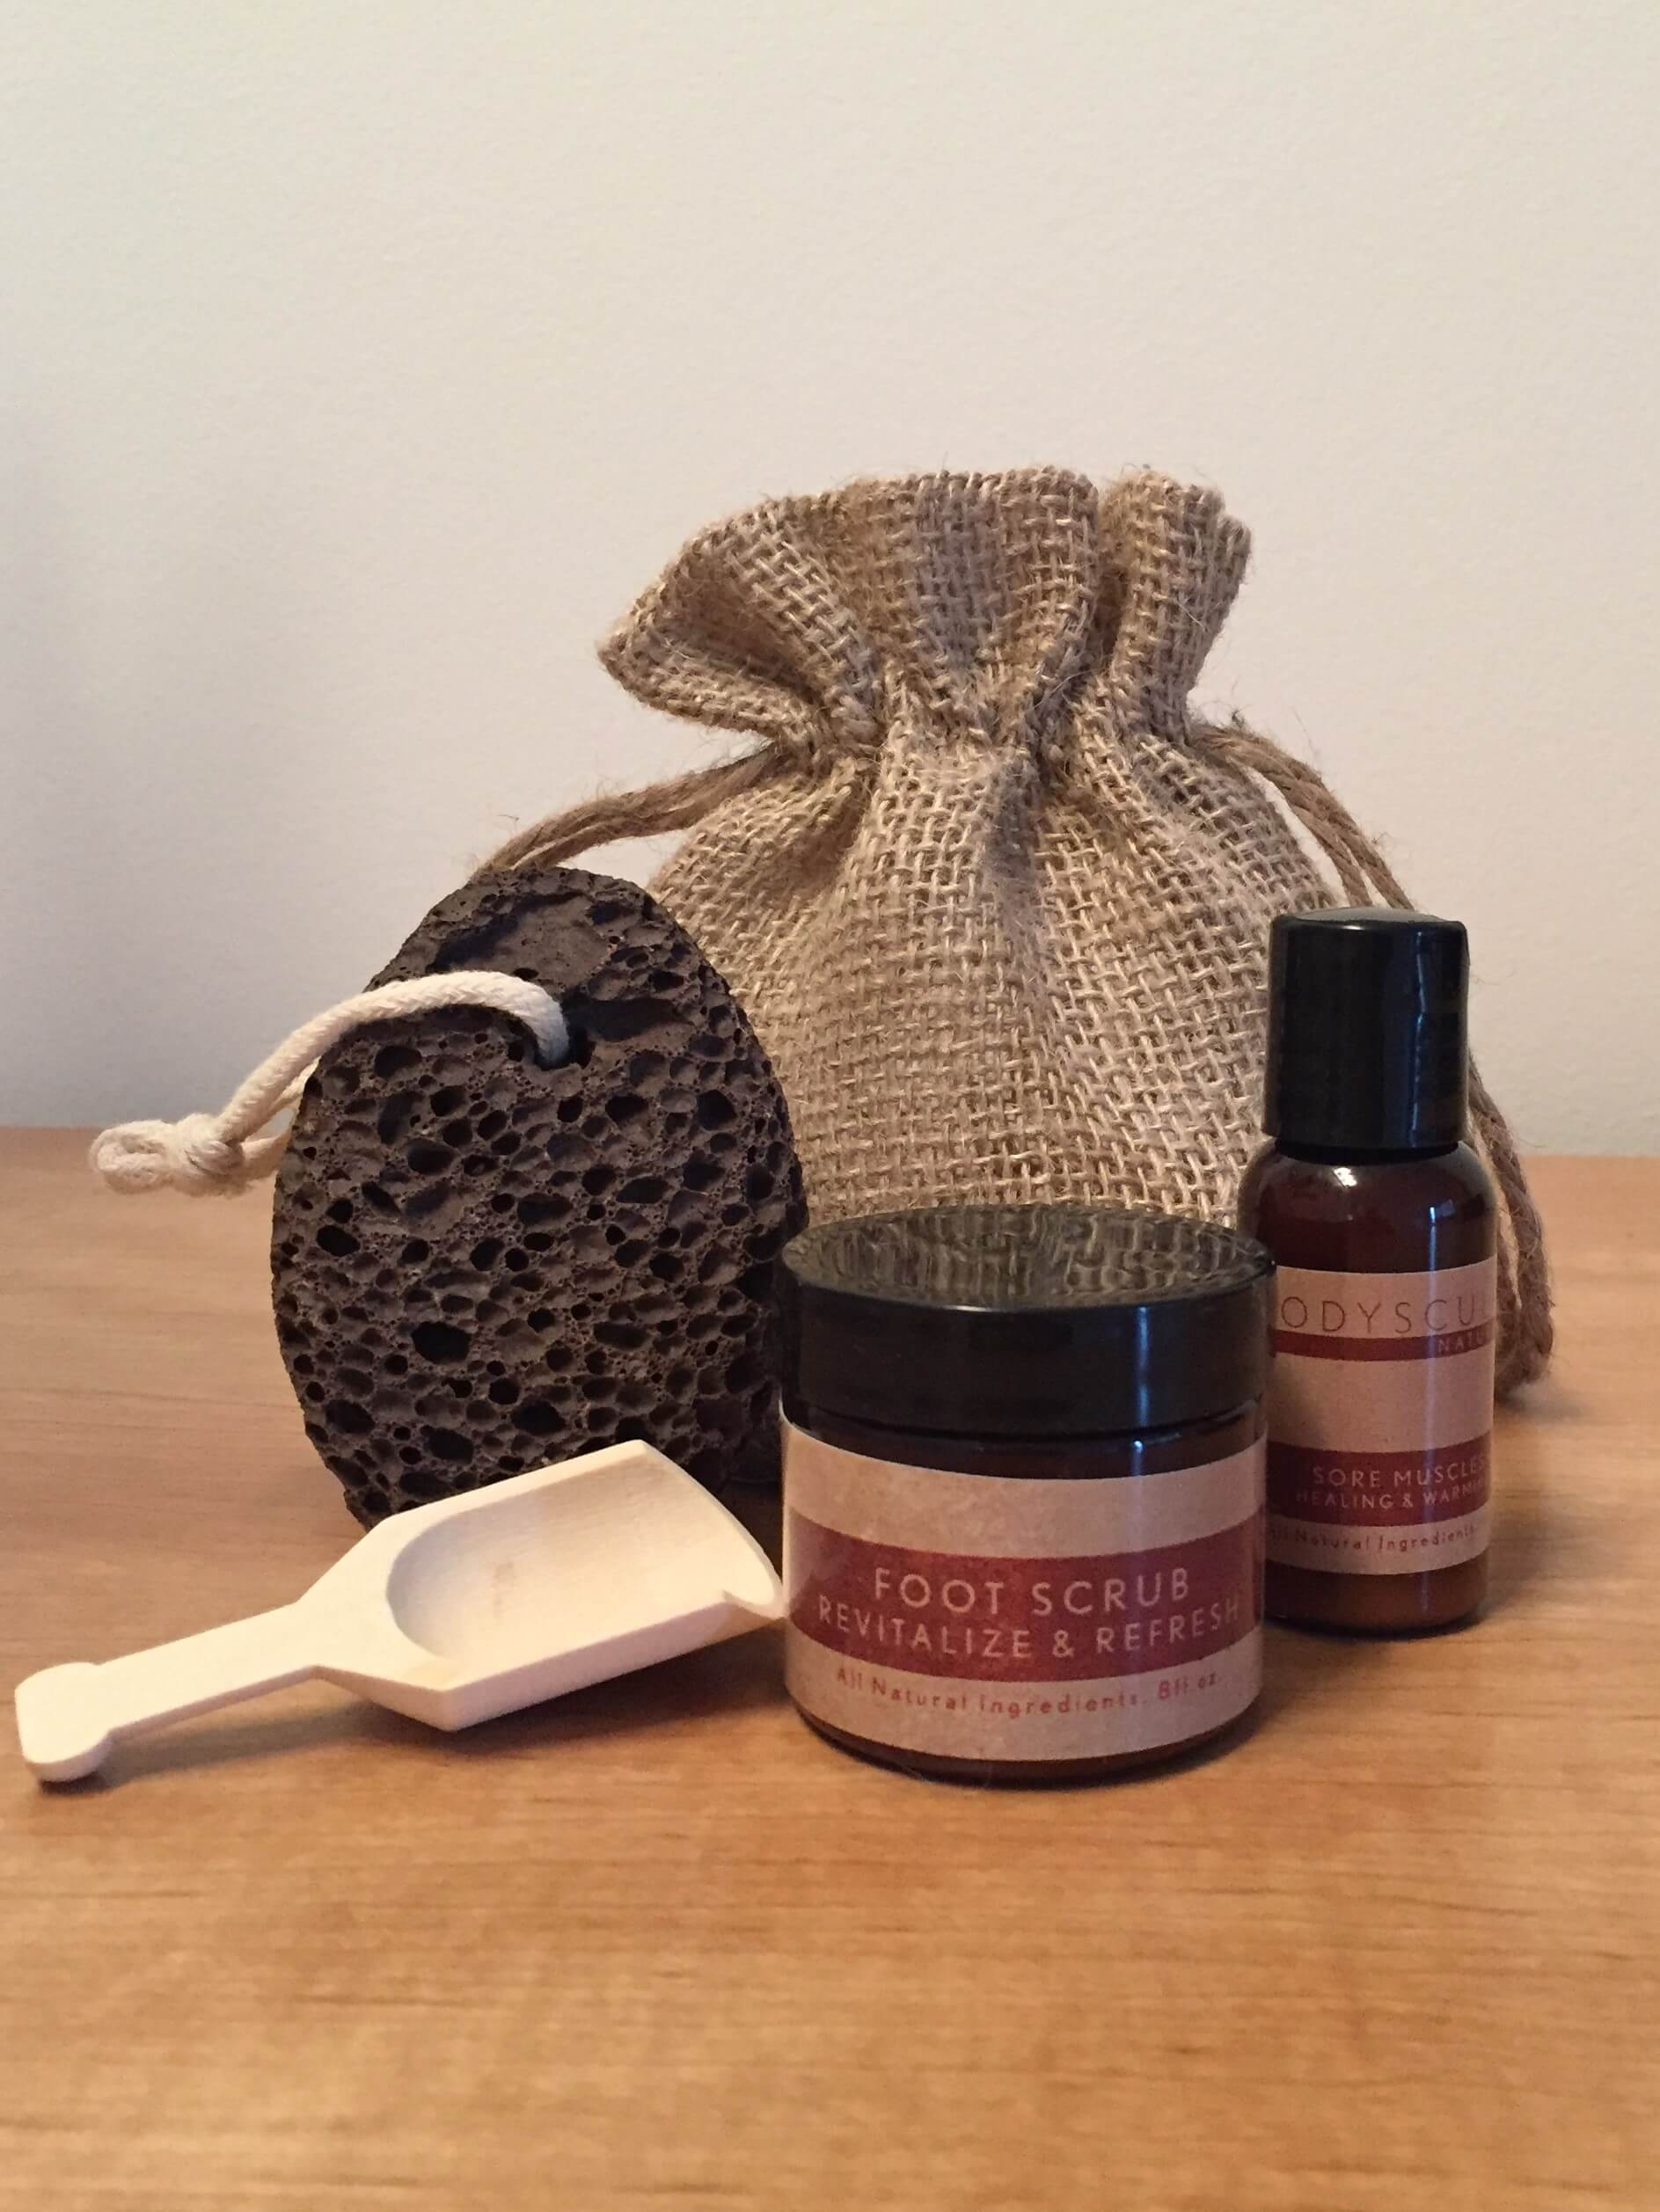 BodySculpt Naturals by Karen Shaw, essential oils, body products, body scrubs, all natural body products, food scrub